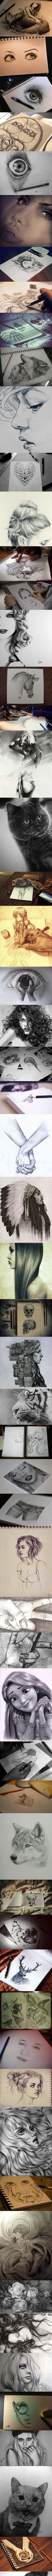 Black and white drawings - amazing detail!